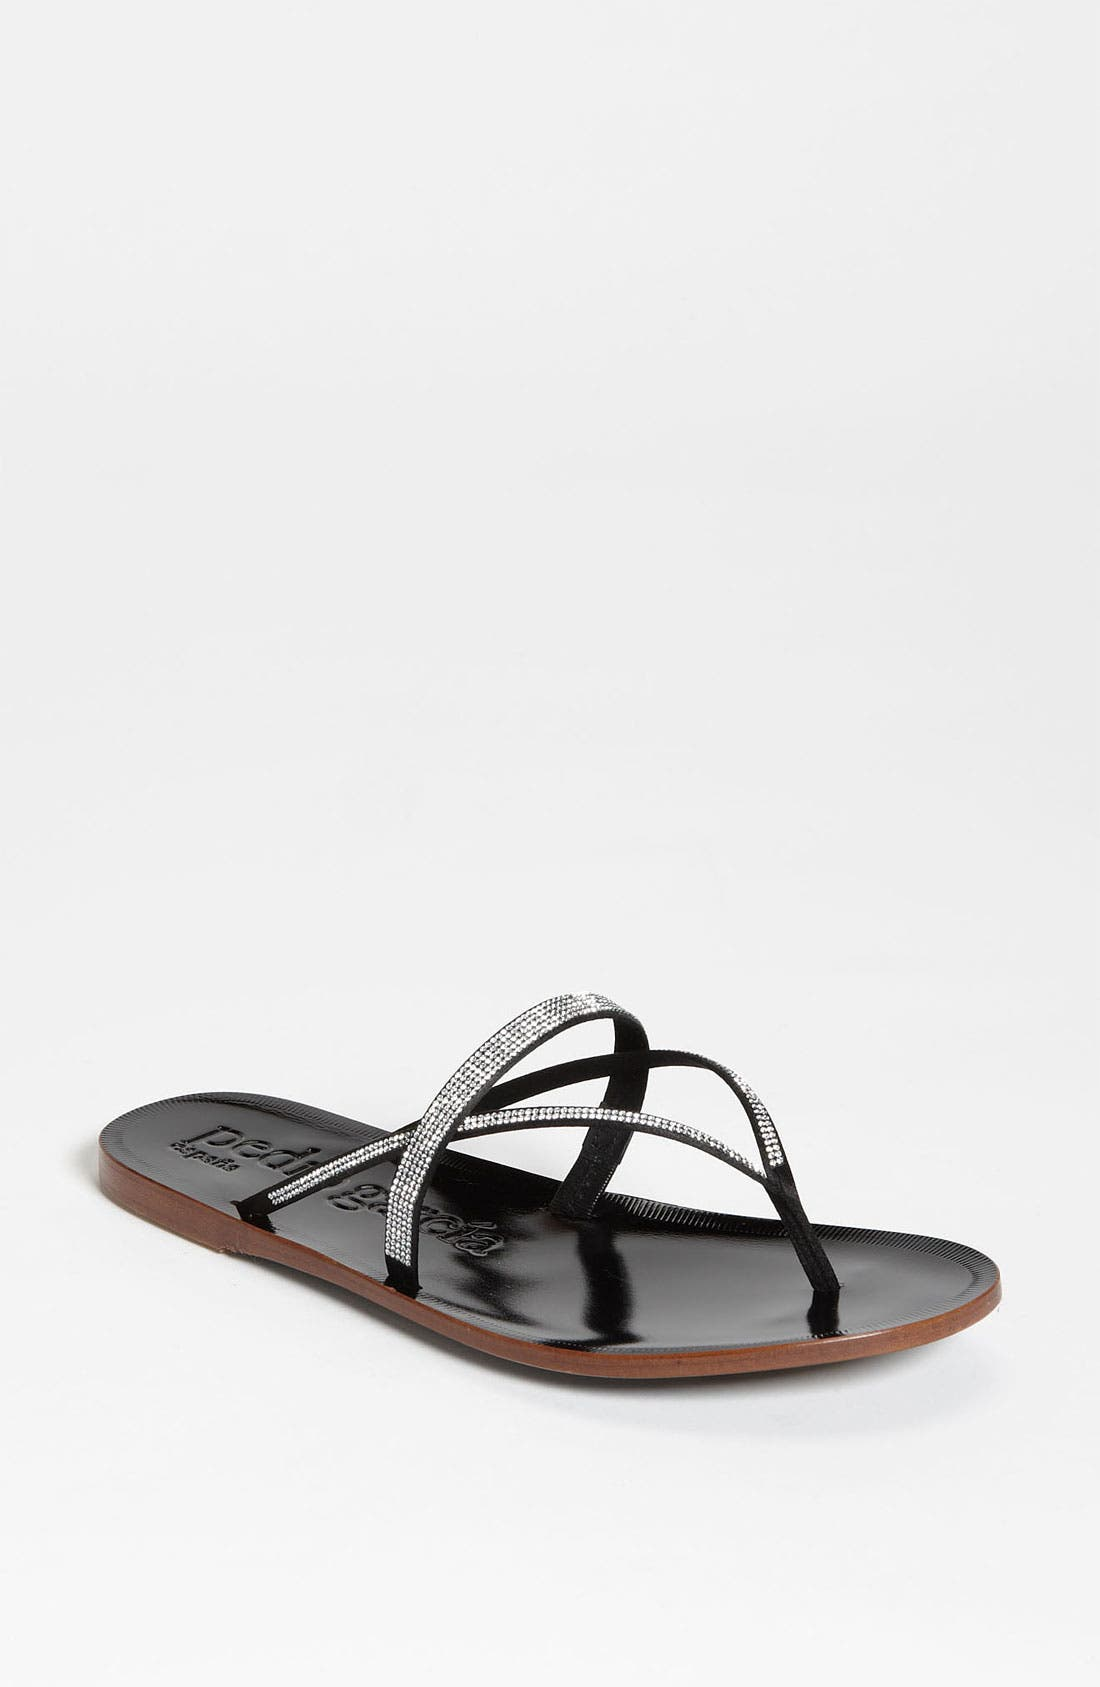 Alternate Image 1 Selected - Pedro Garcia 'Zuriel' Thong Sandal